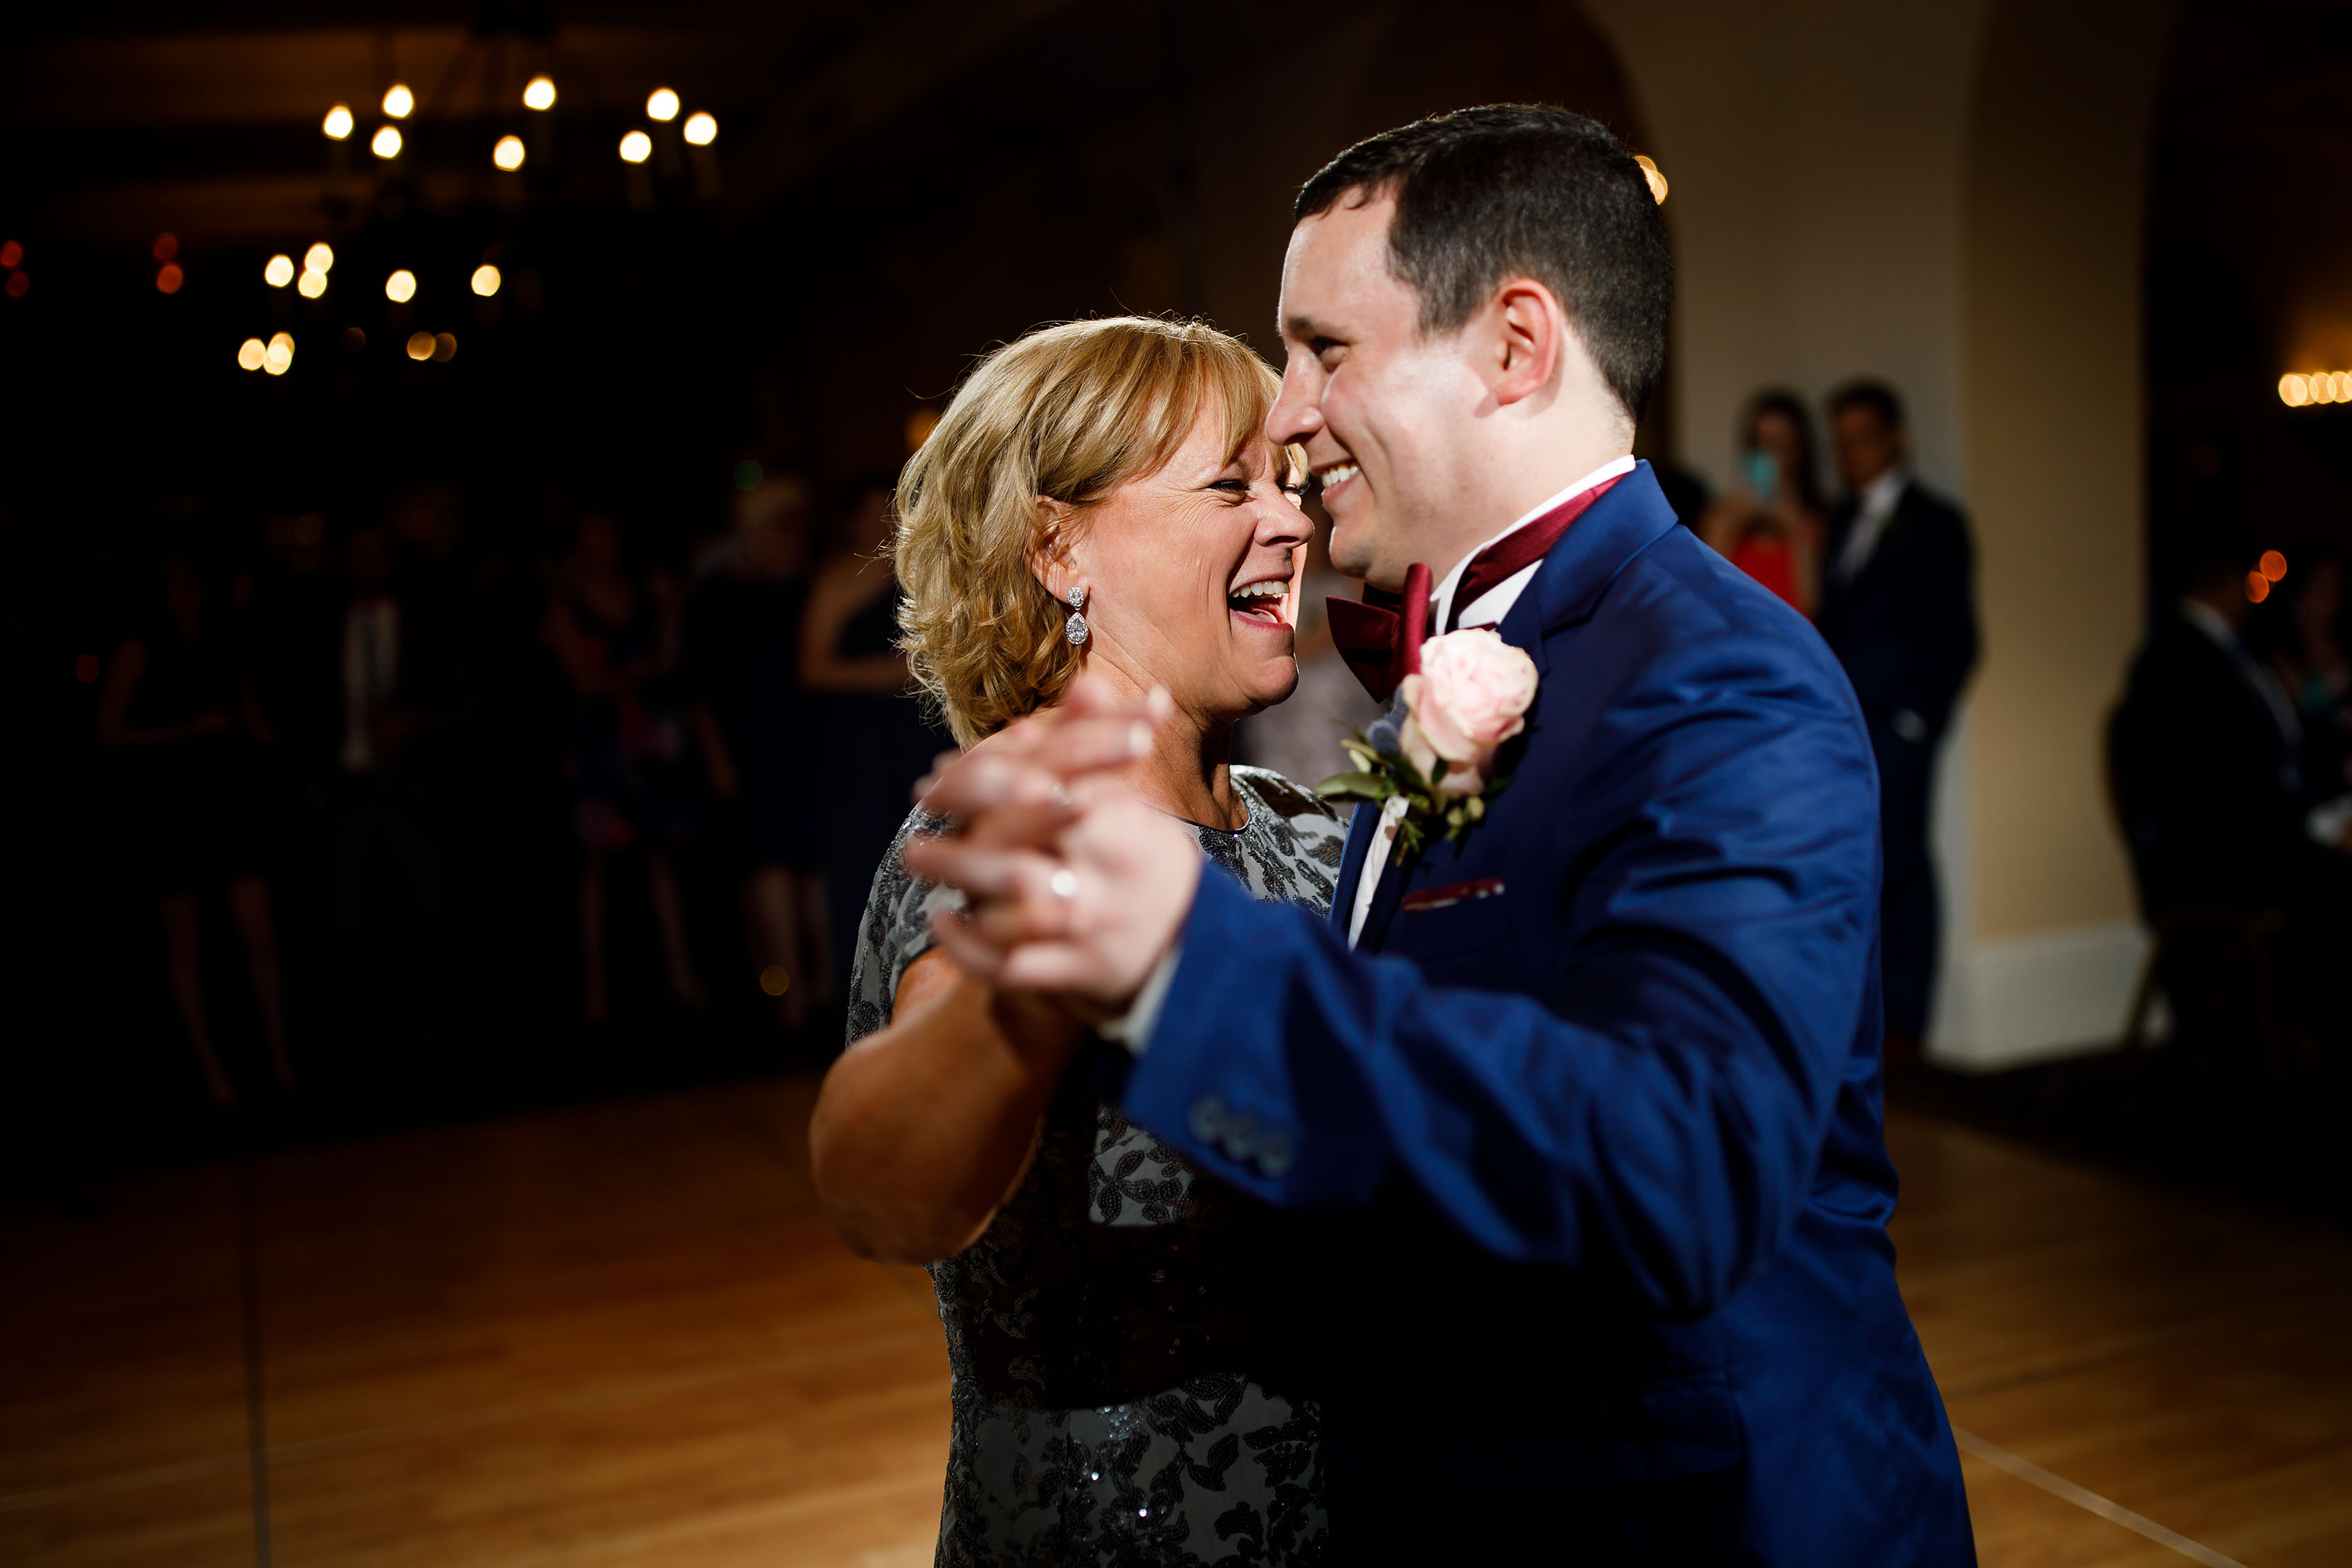 The groom waltzes with his mother at Ravisloe